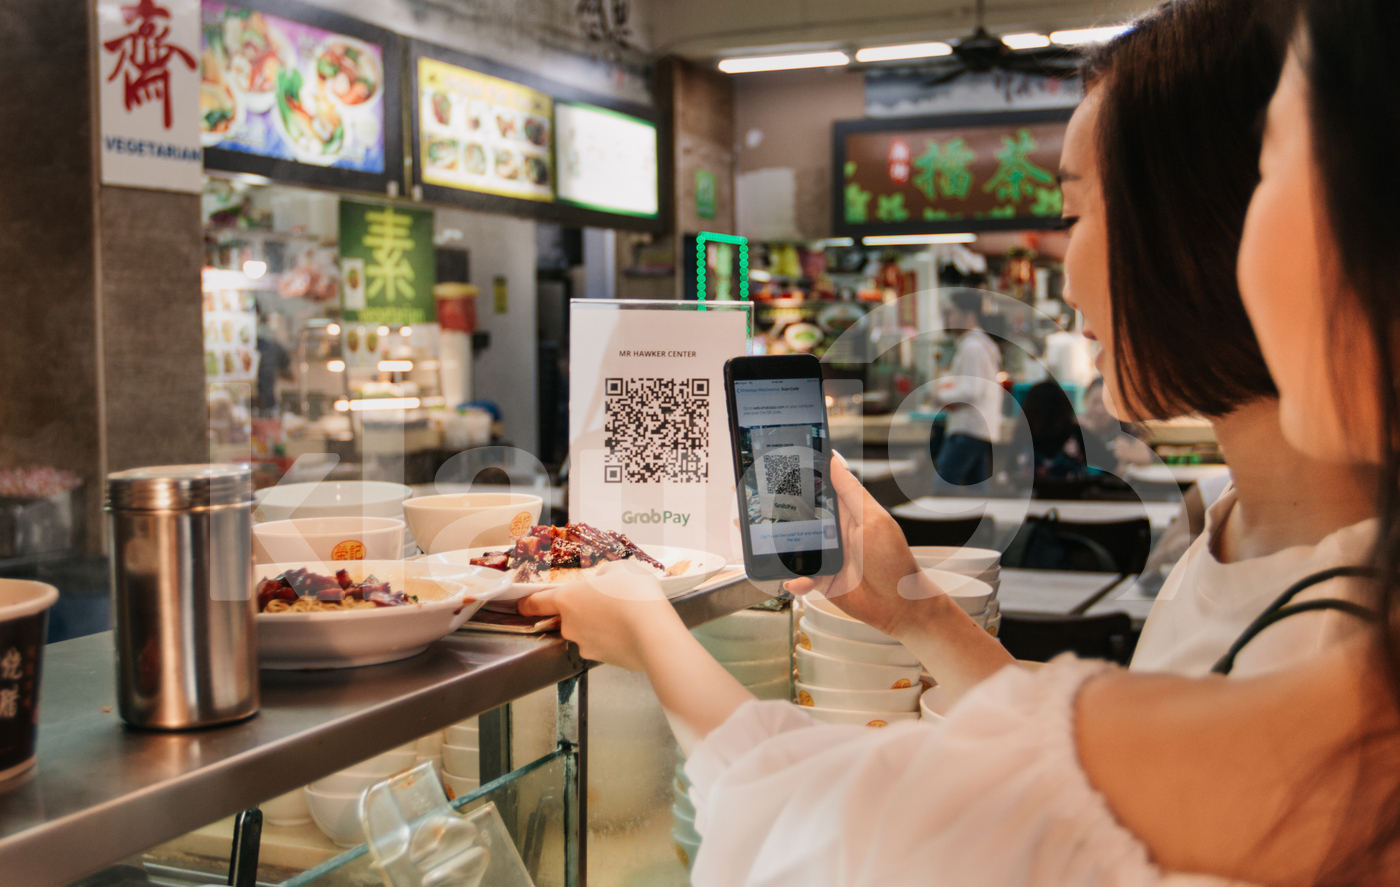 Young Asian friends scanning QR code to make payment in local food court